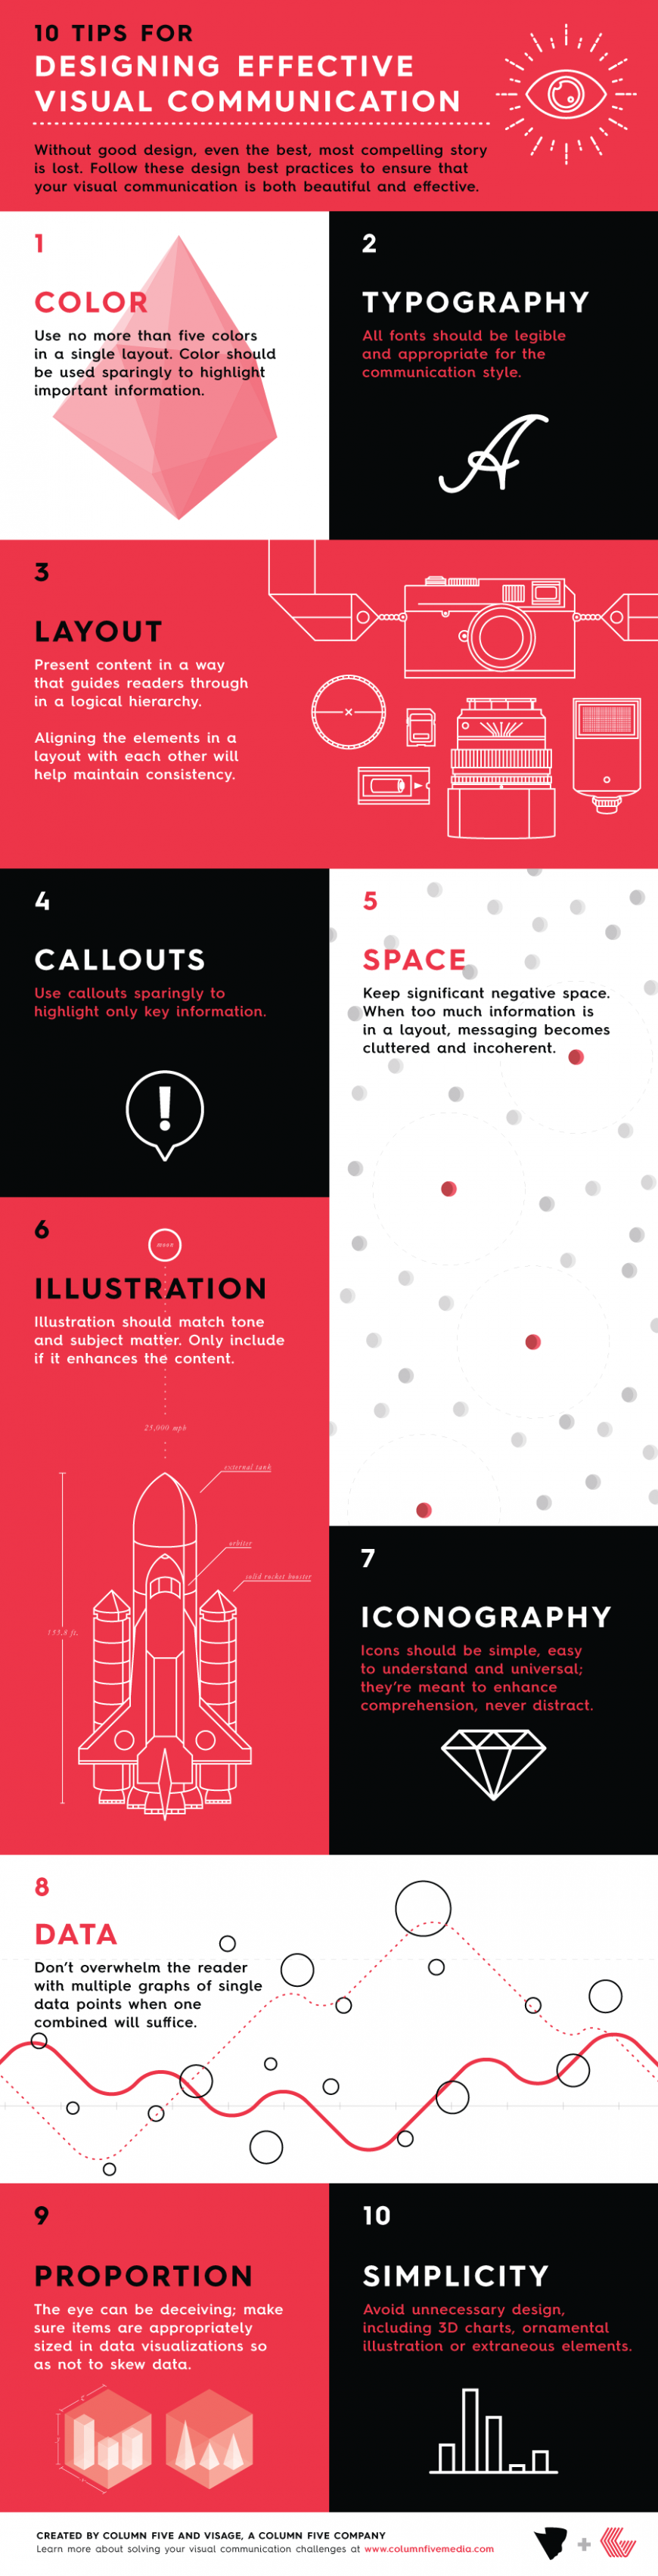 10 Tips to Design Effective Visual Communication